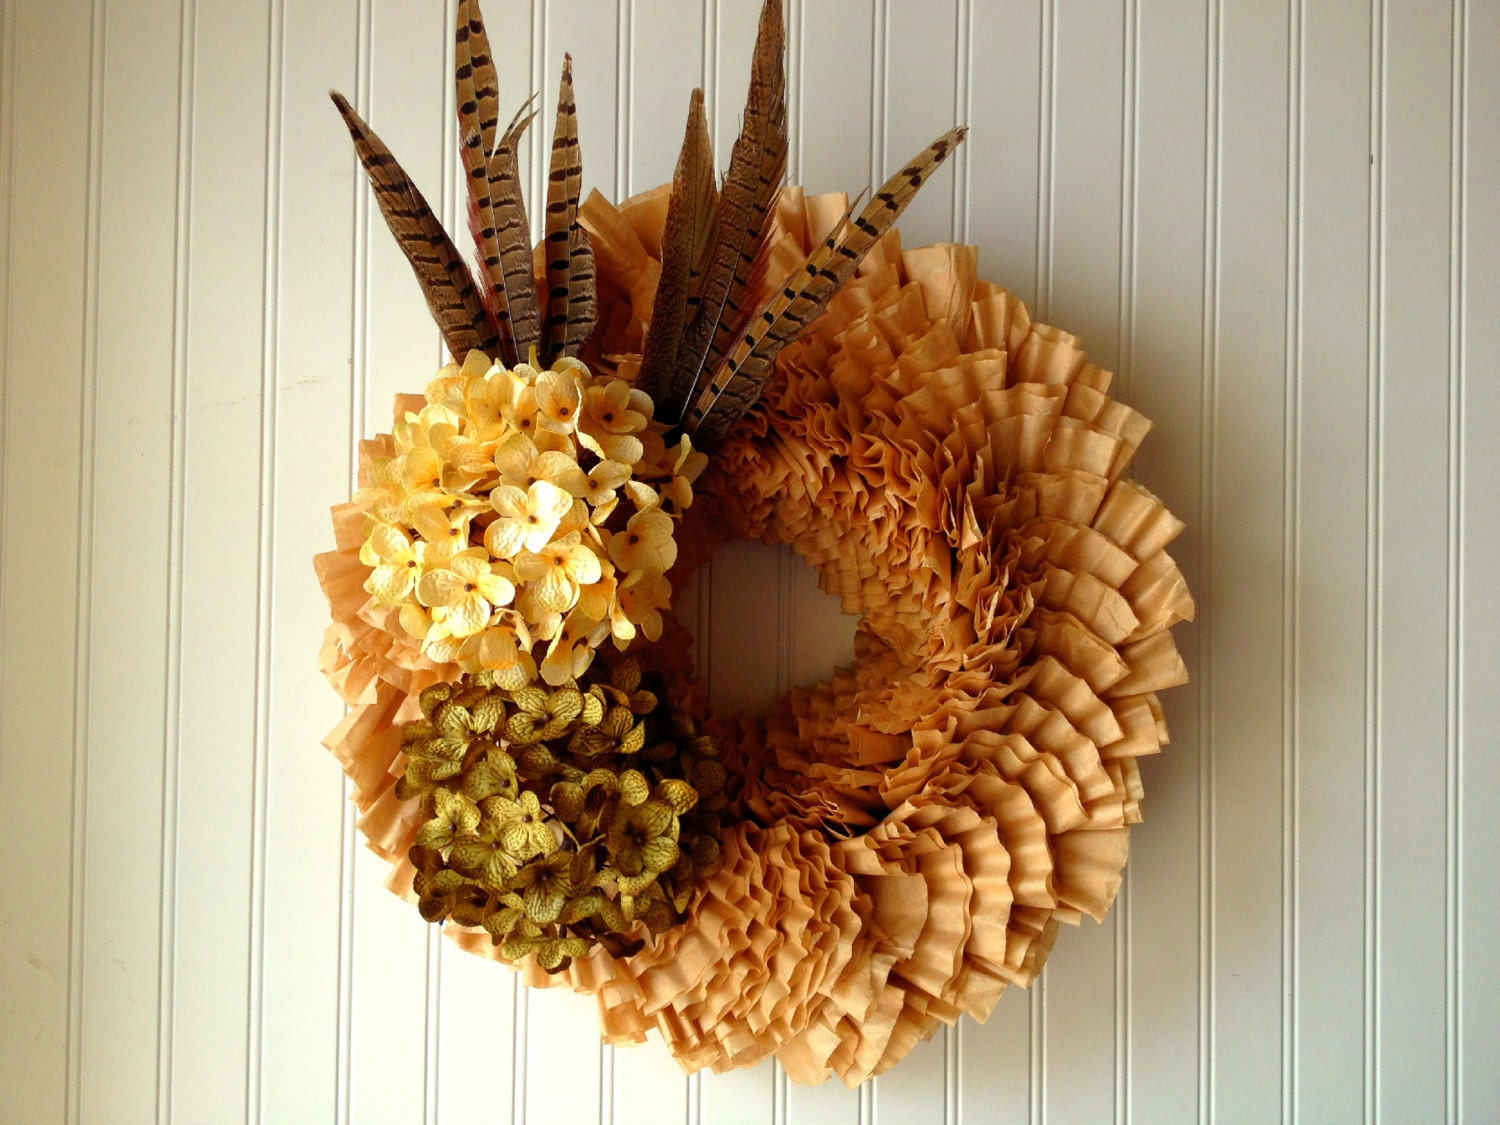 Coffee filter wreath for fall fall wreath wreath for fall How to decorate a wreath